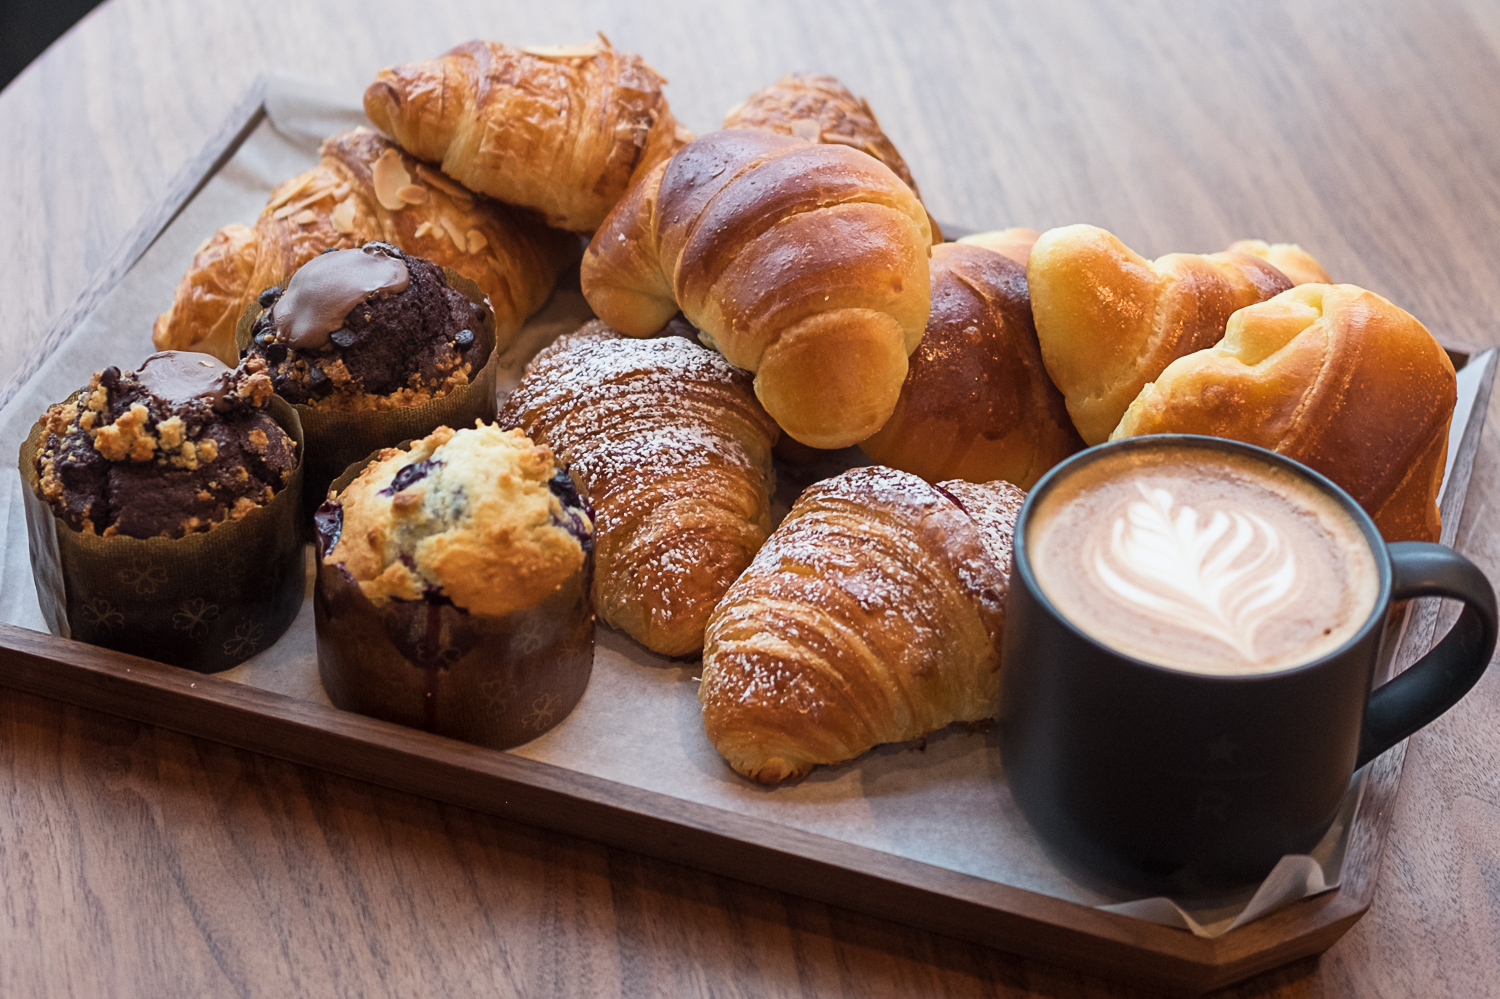 Handcrafted pastries made with European-style butter and Italian fillings will be served all day.  Delicious on their own; even better when paired with espresso. (Image: Paola Thomas / Seattle Refined)<p></p>